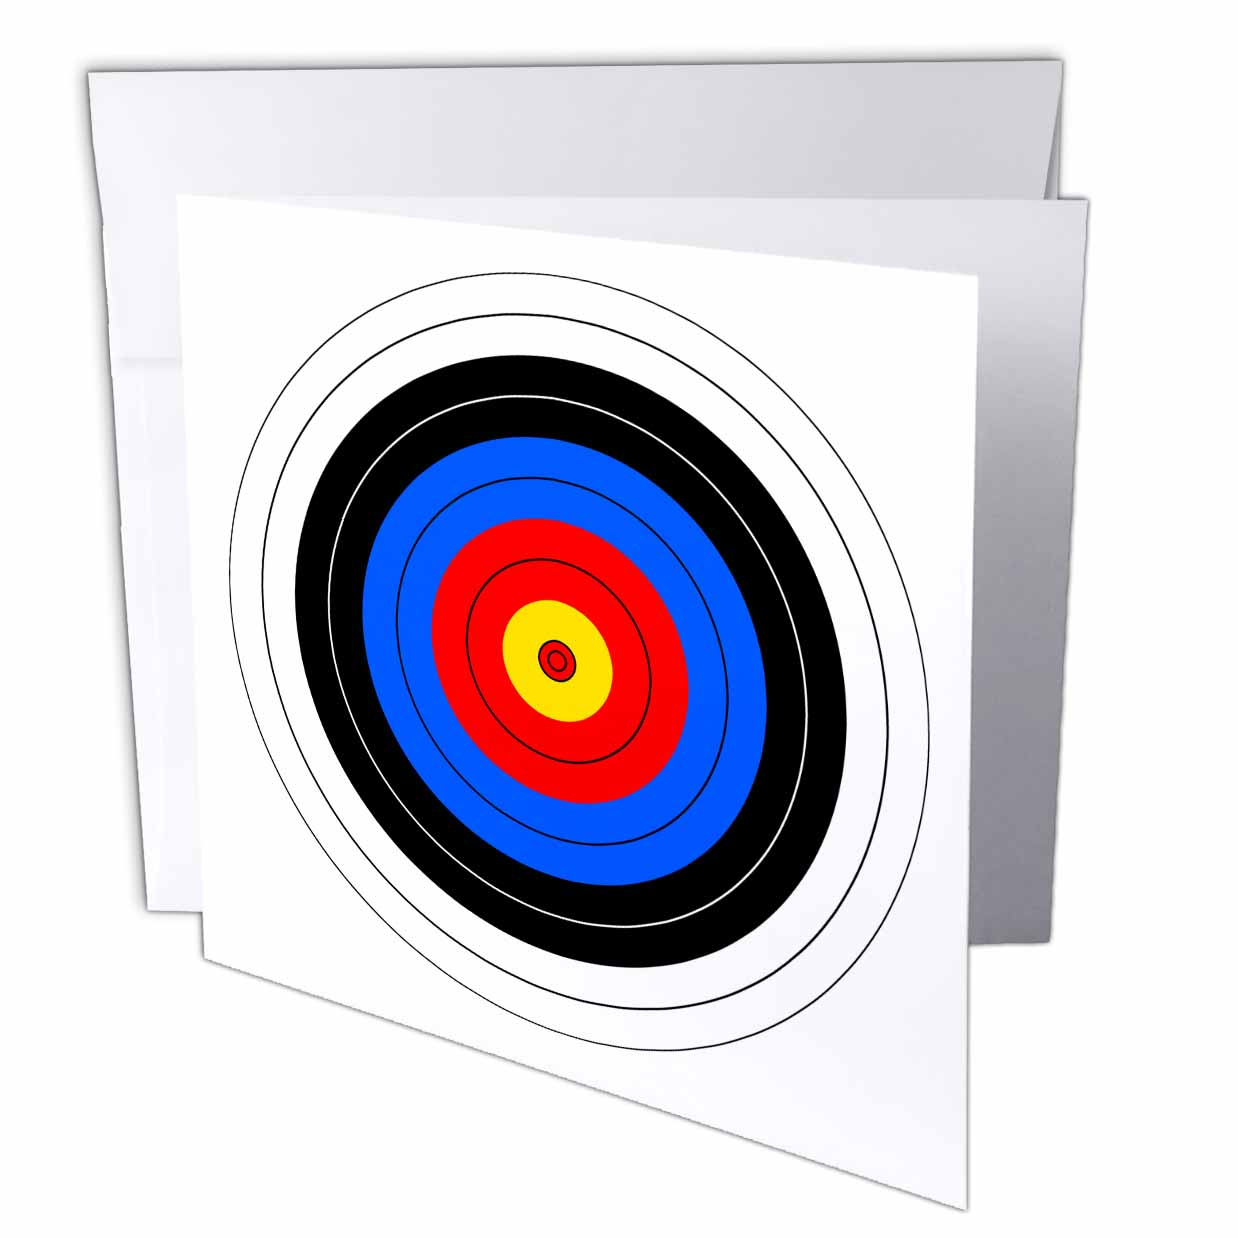 3dRose Target with red yellow black white and blue rings - archery, goal, sport, game, illustration, Greeting Cards, 6 x 6 inches, set of 6